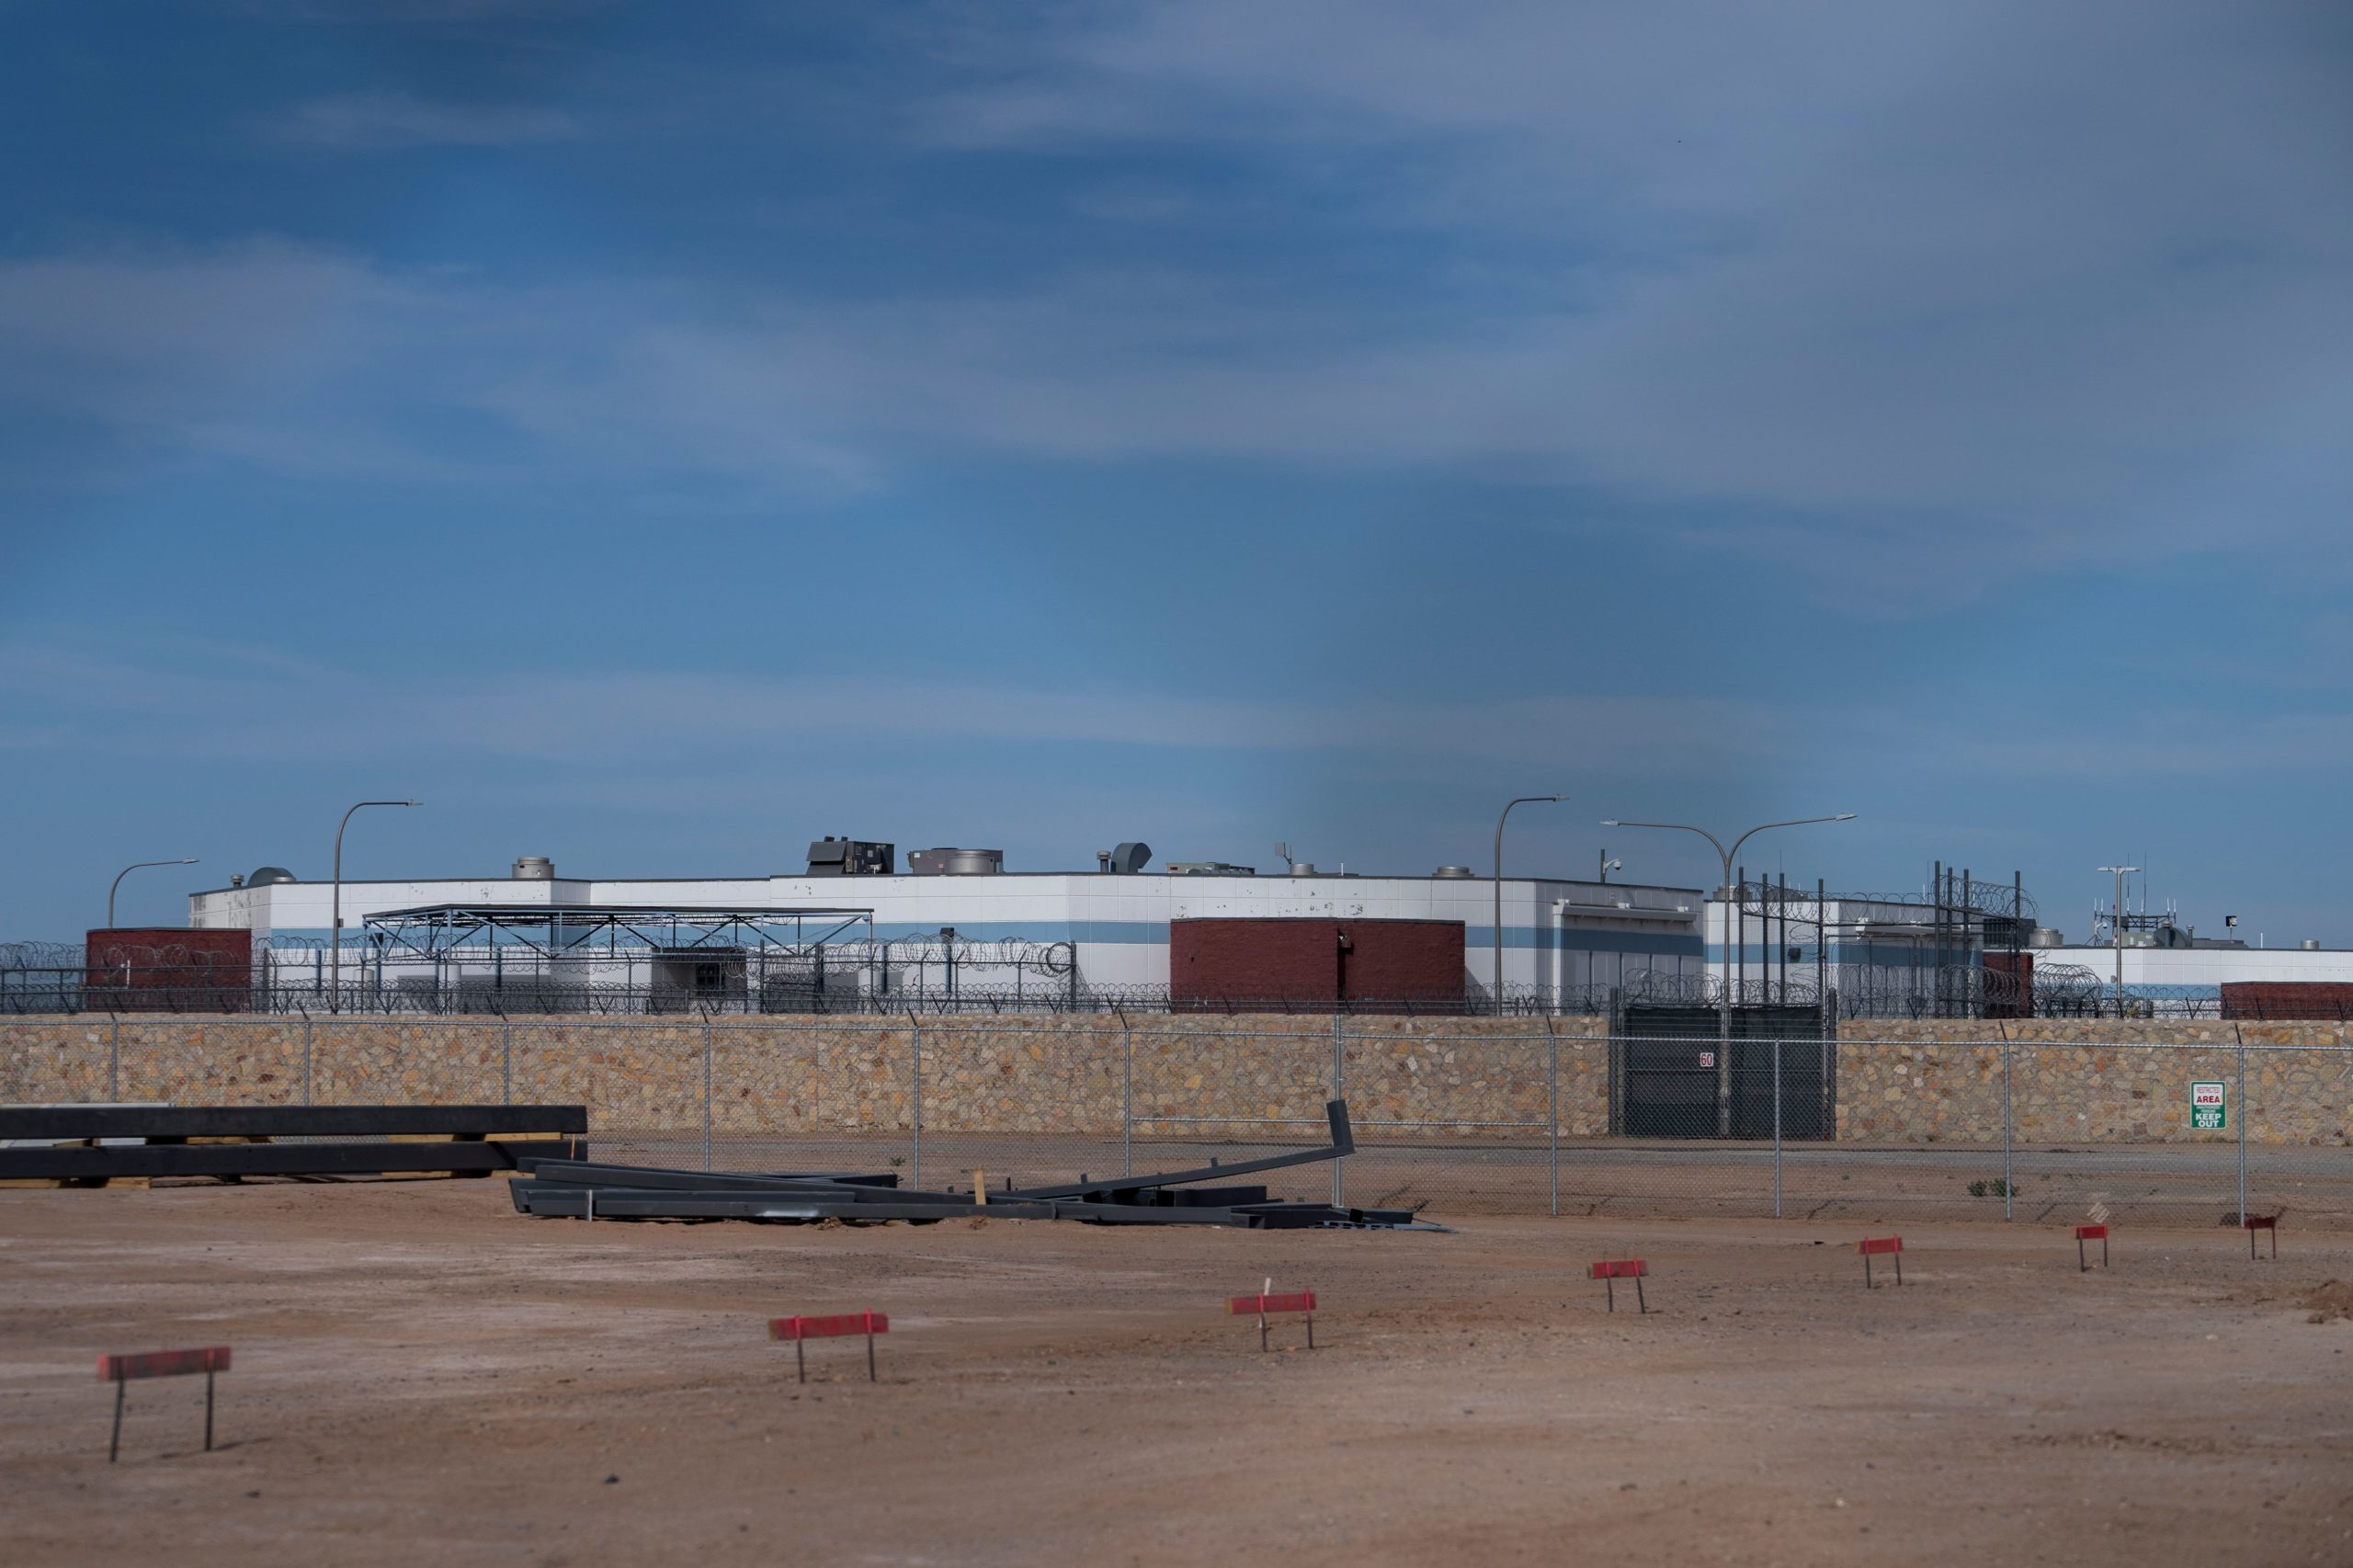 An Immigration and Customs Enforcement Processing Center is seen from a distance. (Paul Ratje/AFP/ via Getty Images)